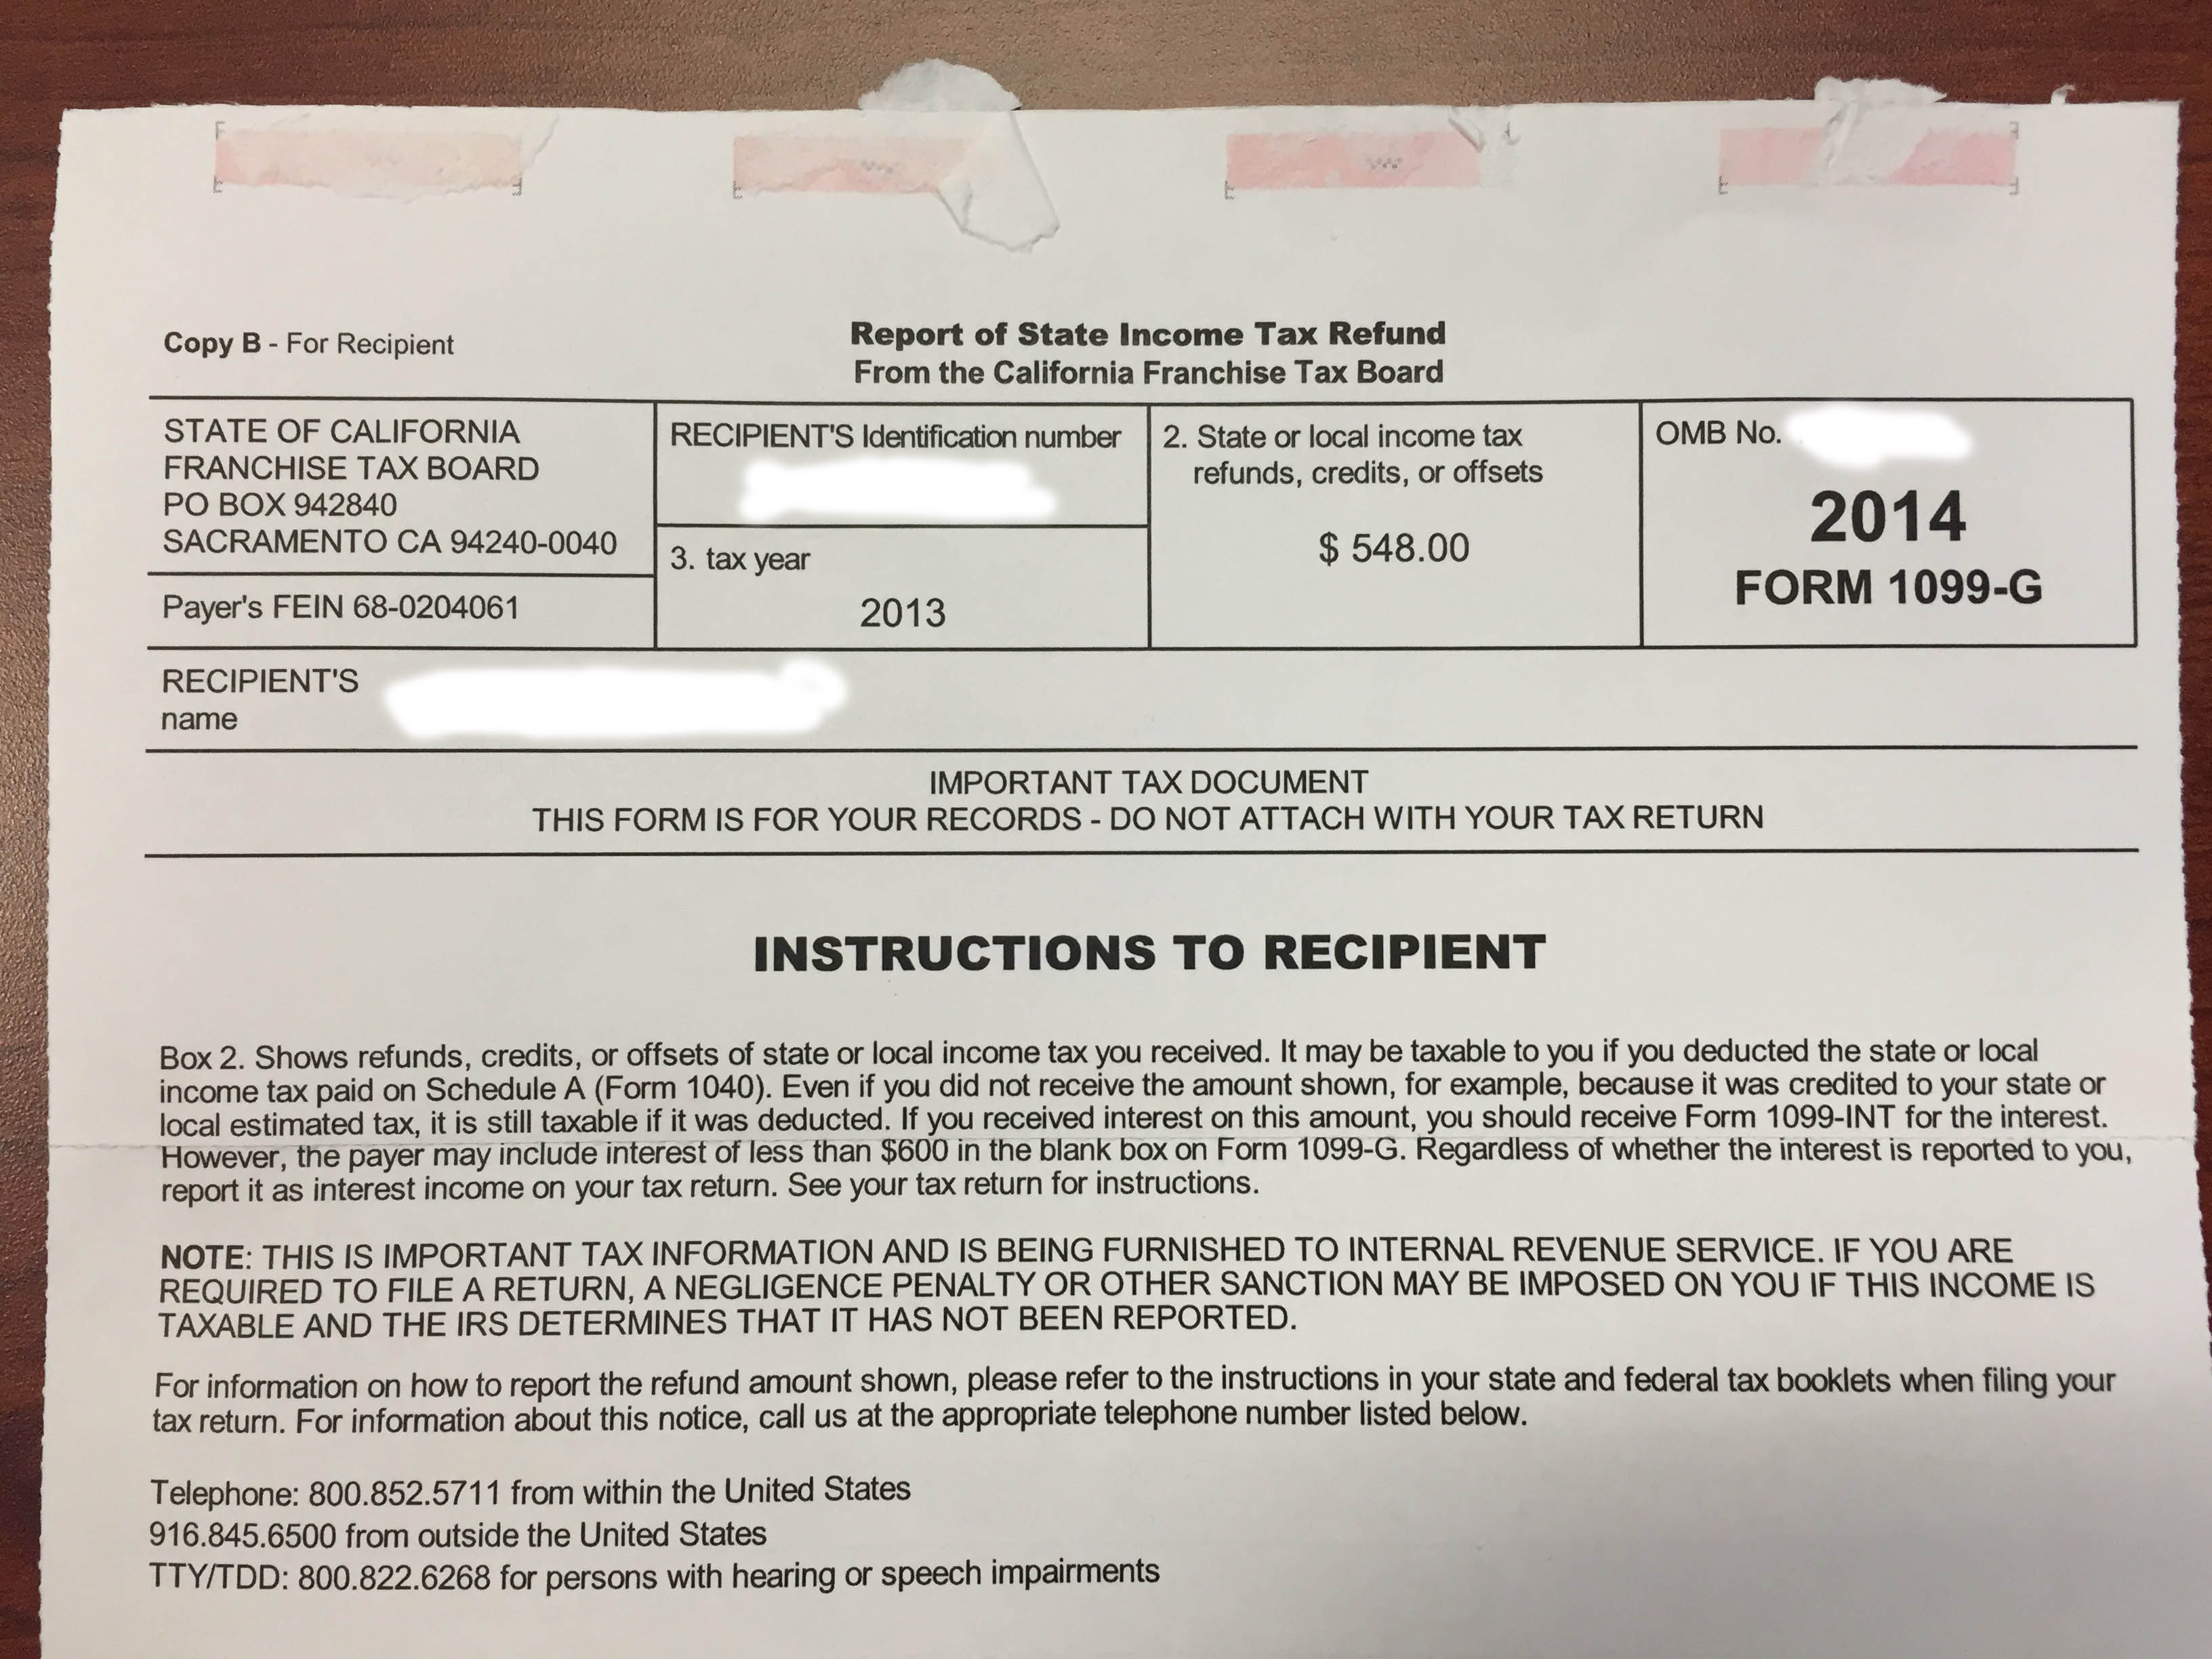 I Recieved A Form 1099 G From Ca From The Tax Year 2013 About A